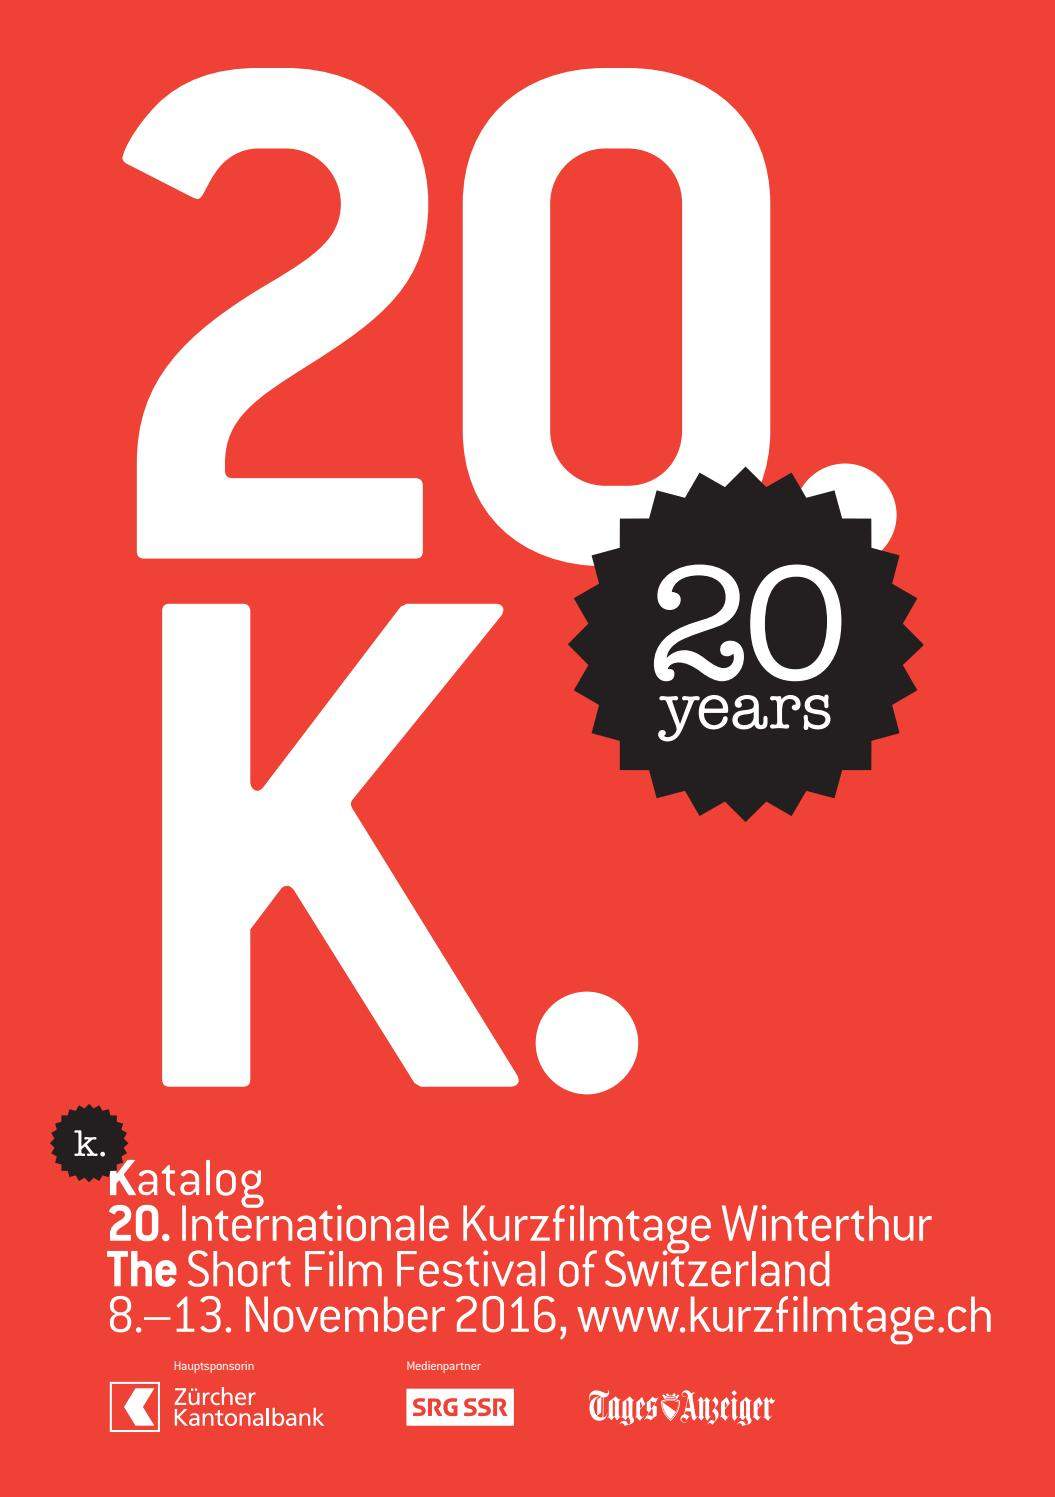 Katalog Katalog 20 Internationale Kurzfilmtage Winterthur By Int